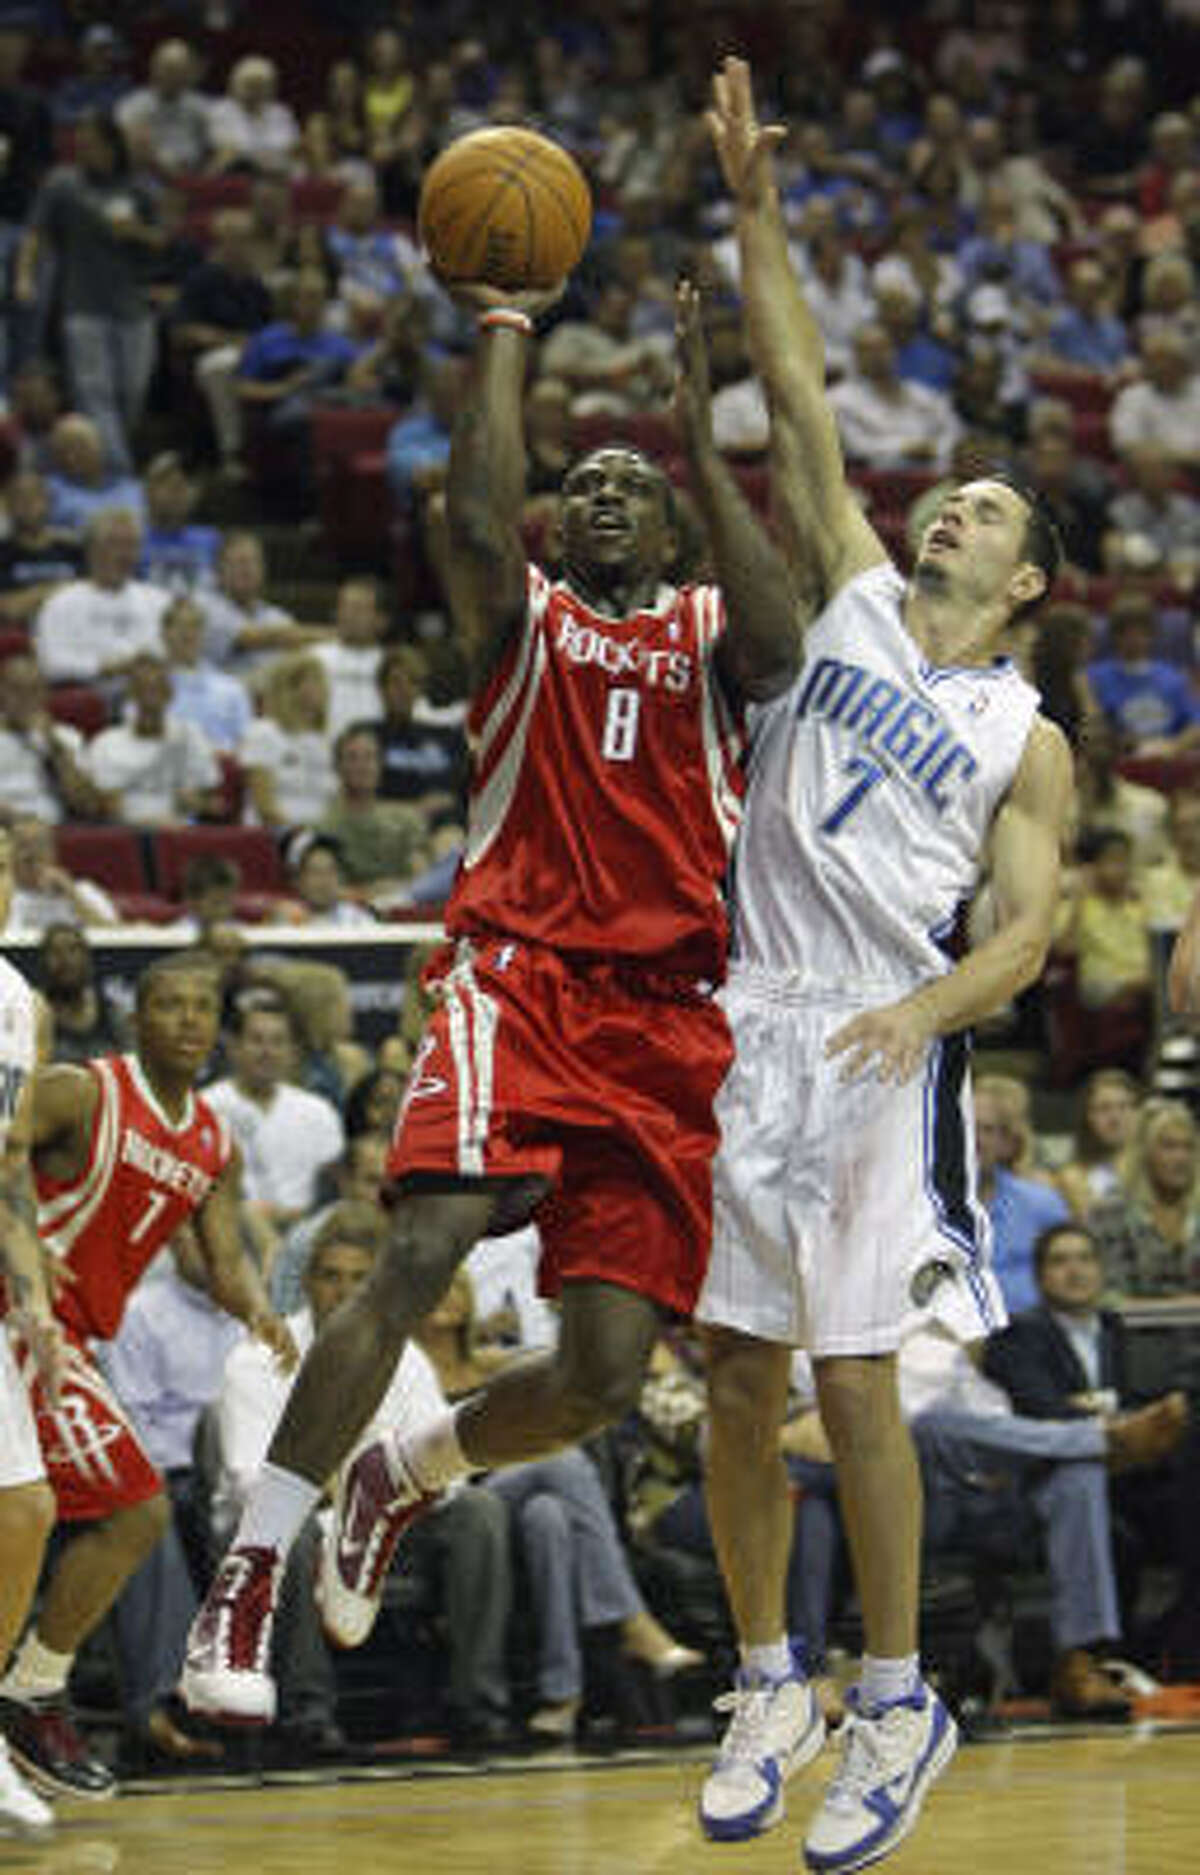 Rockets guard Jermaine Taylor gets off a shot as he is guarded by Magic guard J.J. Redick.